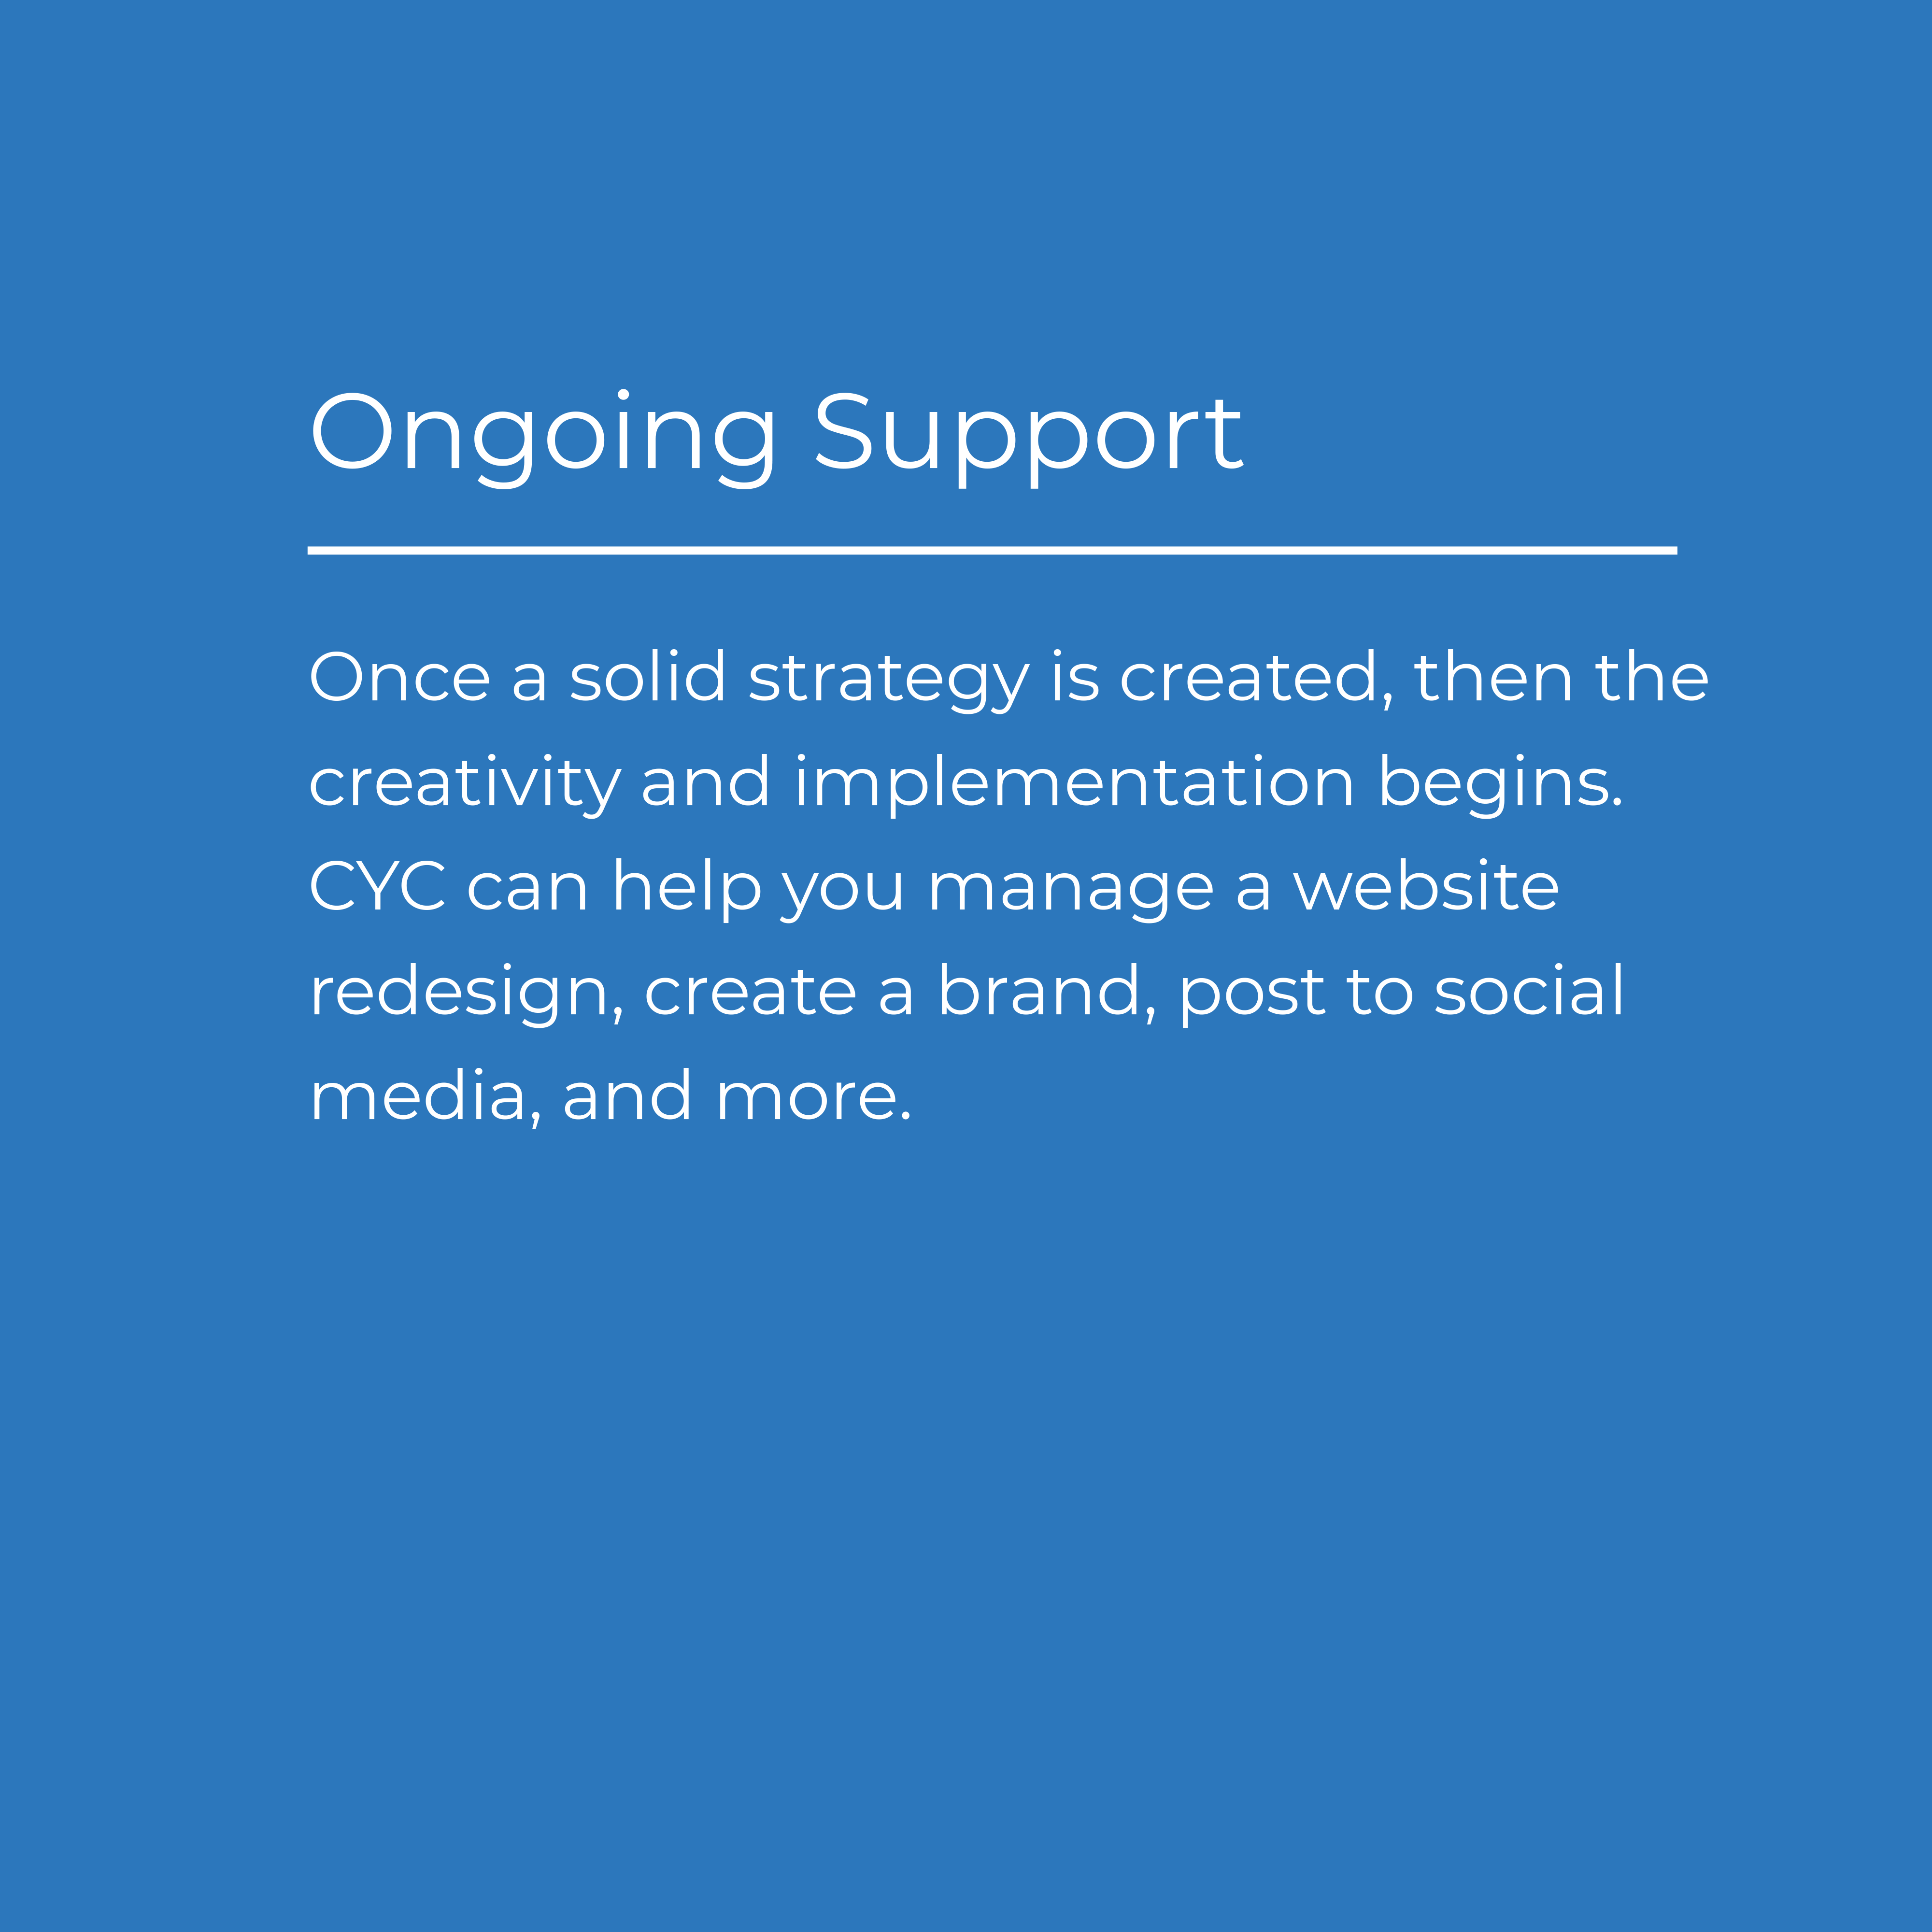 Ongoing Support outline